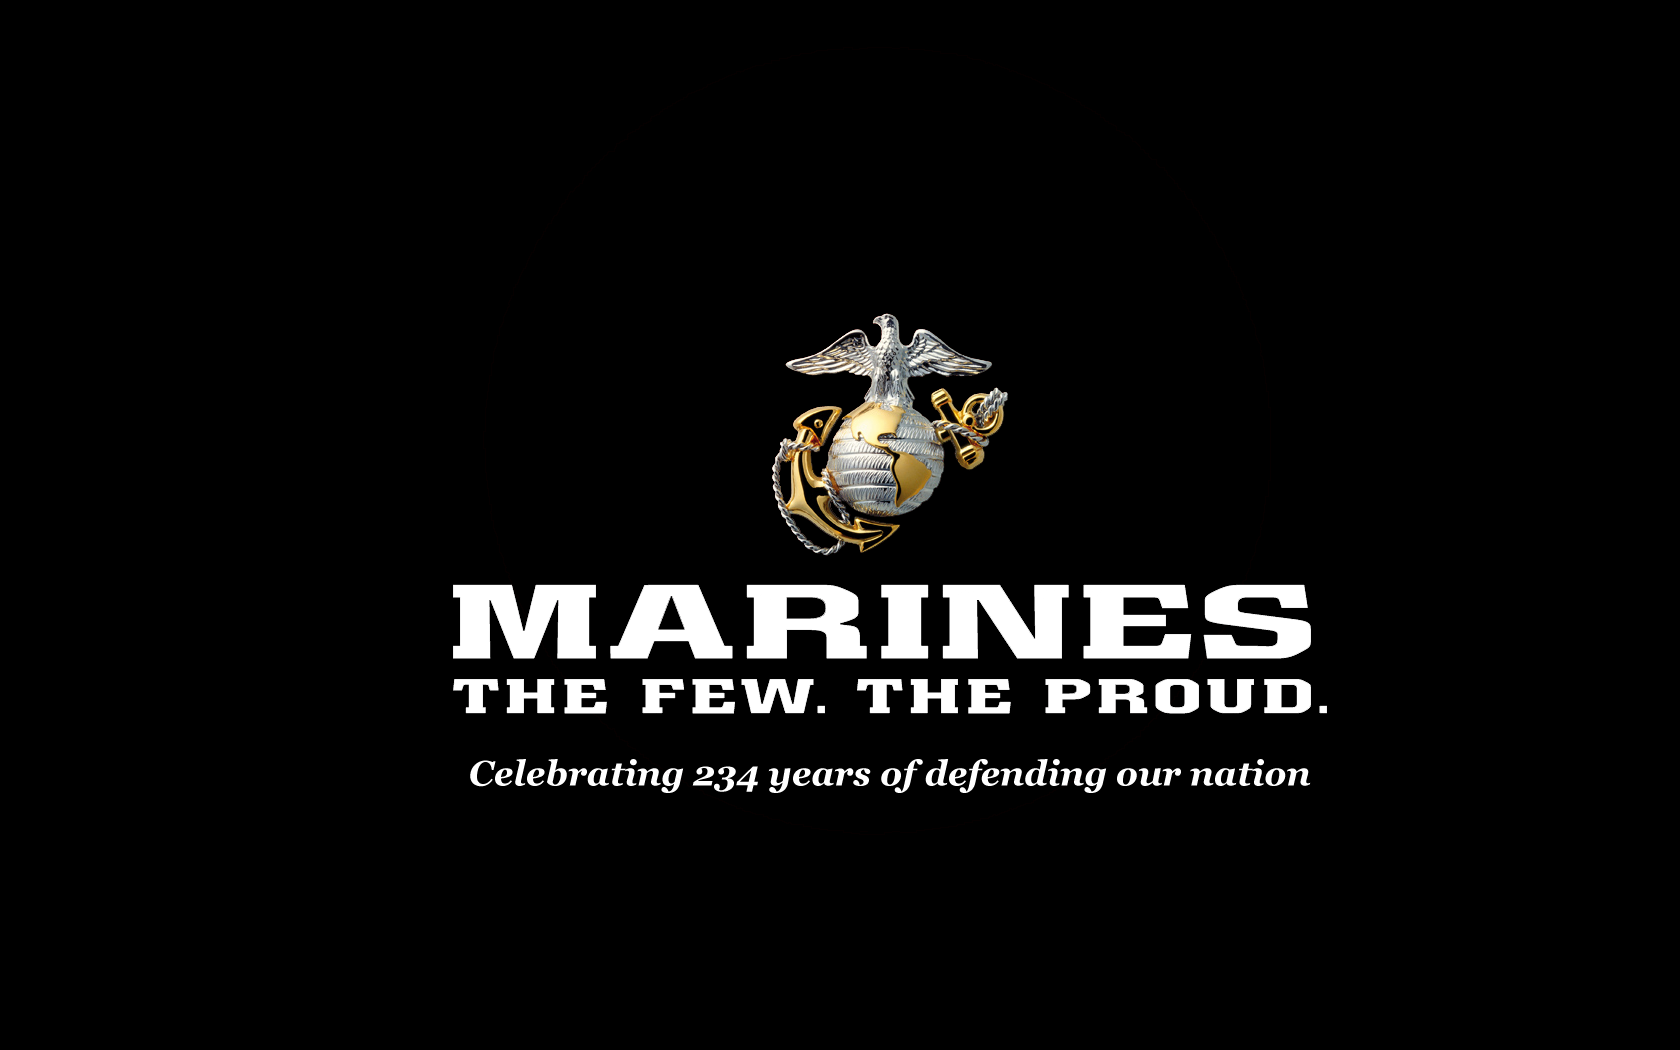 Marine Corps Background Wallpaper Wallpapersafari